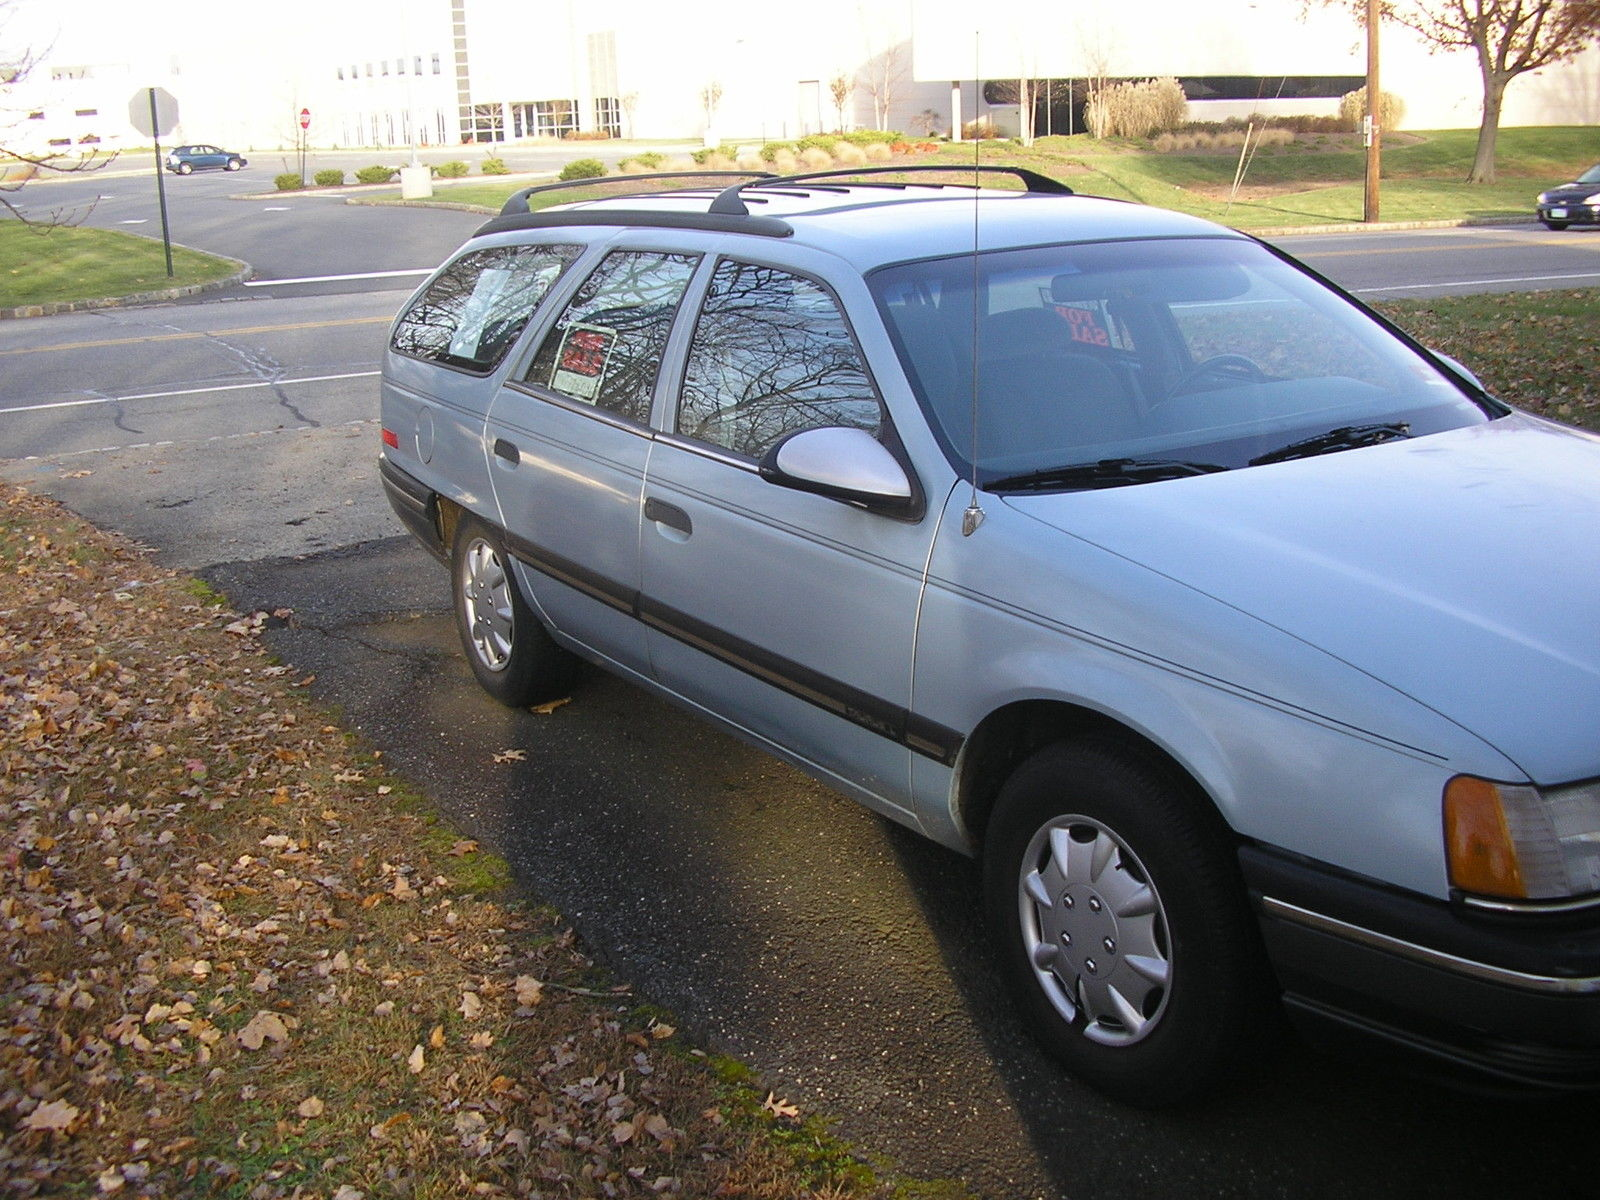 1991 Ford Taurus Wagon Classic Ford Taurus 1991 For Sale